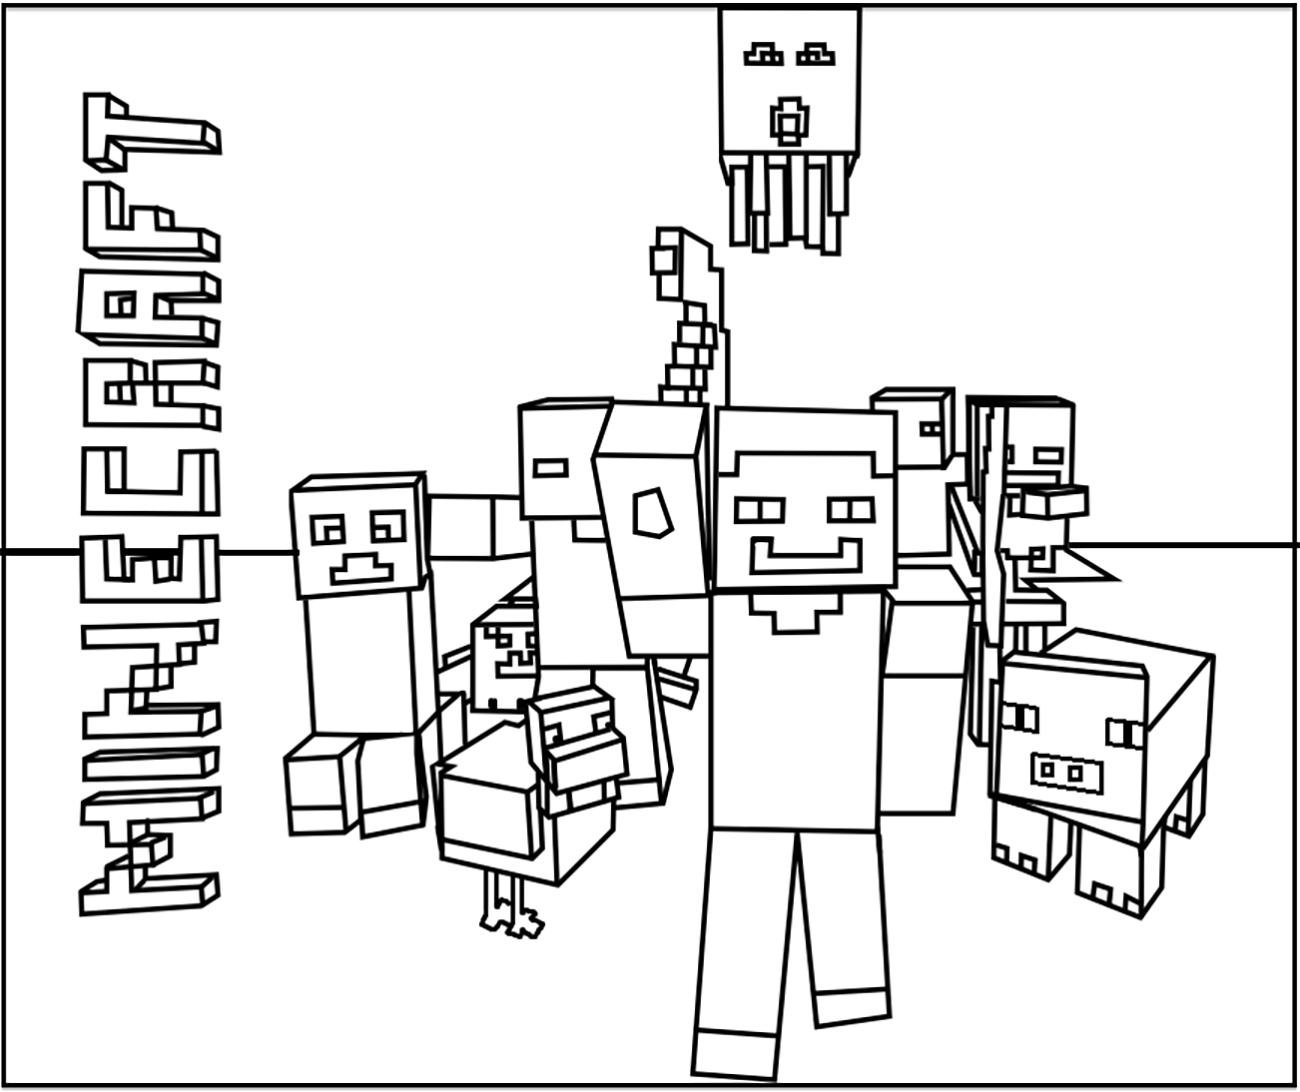 minecraft pictures to print and color minecraft free to color for kids minecraft kids coloring minecraft pictures and print color to